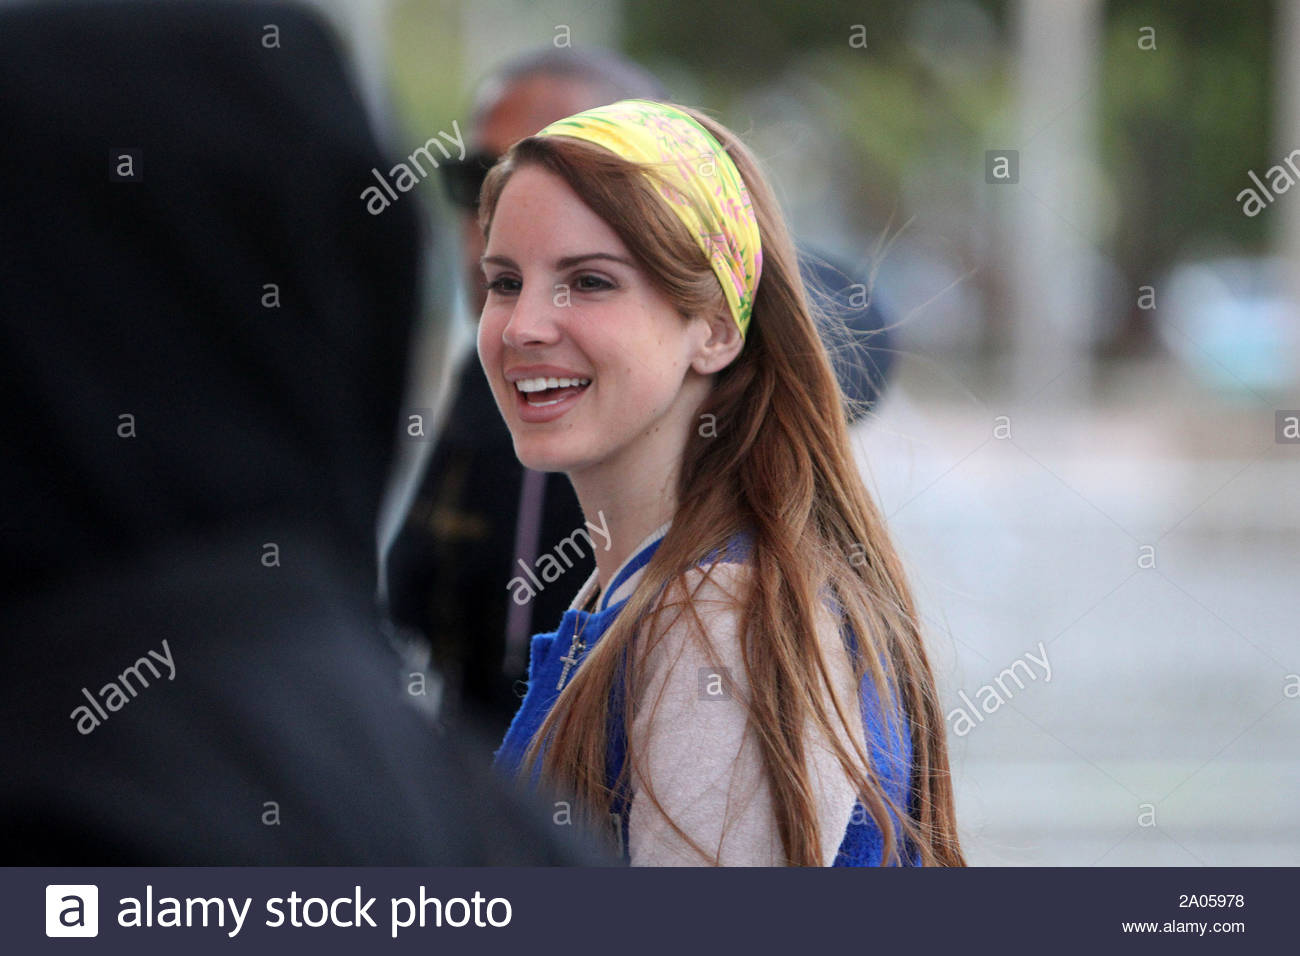 Los Angeles Ca Singer Lana Del Rey Makes Her Way Into The Staples Center This Early